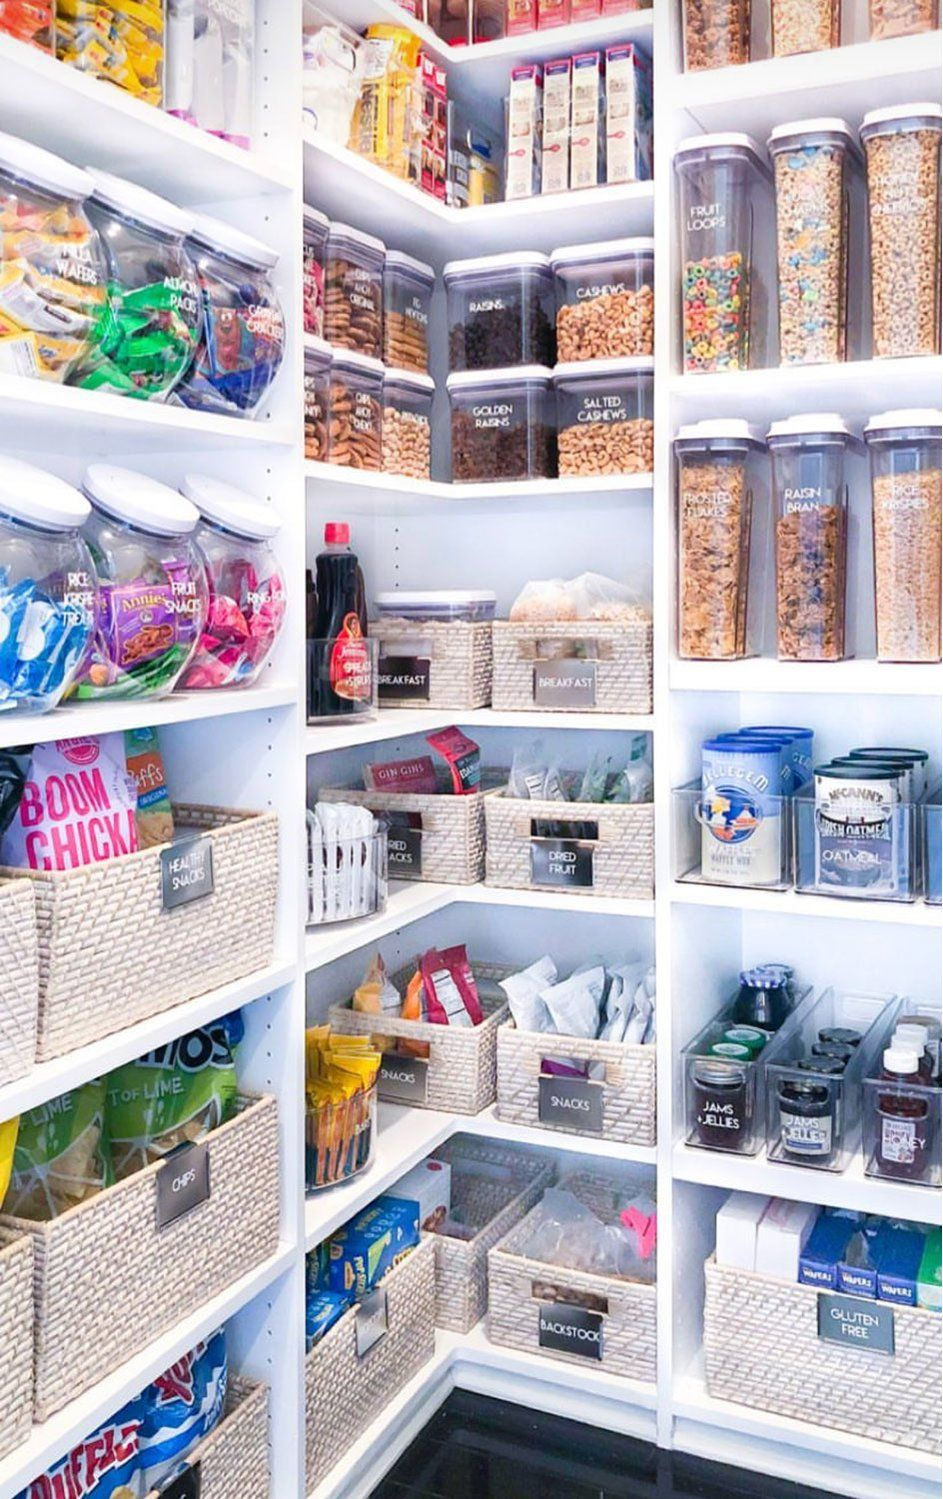 Khloe Kardashian Shows Off Her Newly Organized Pantry | PEOPLE.com